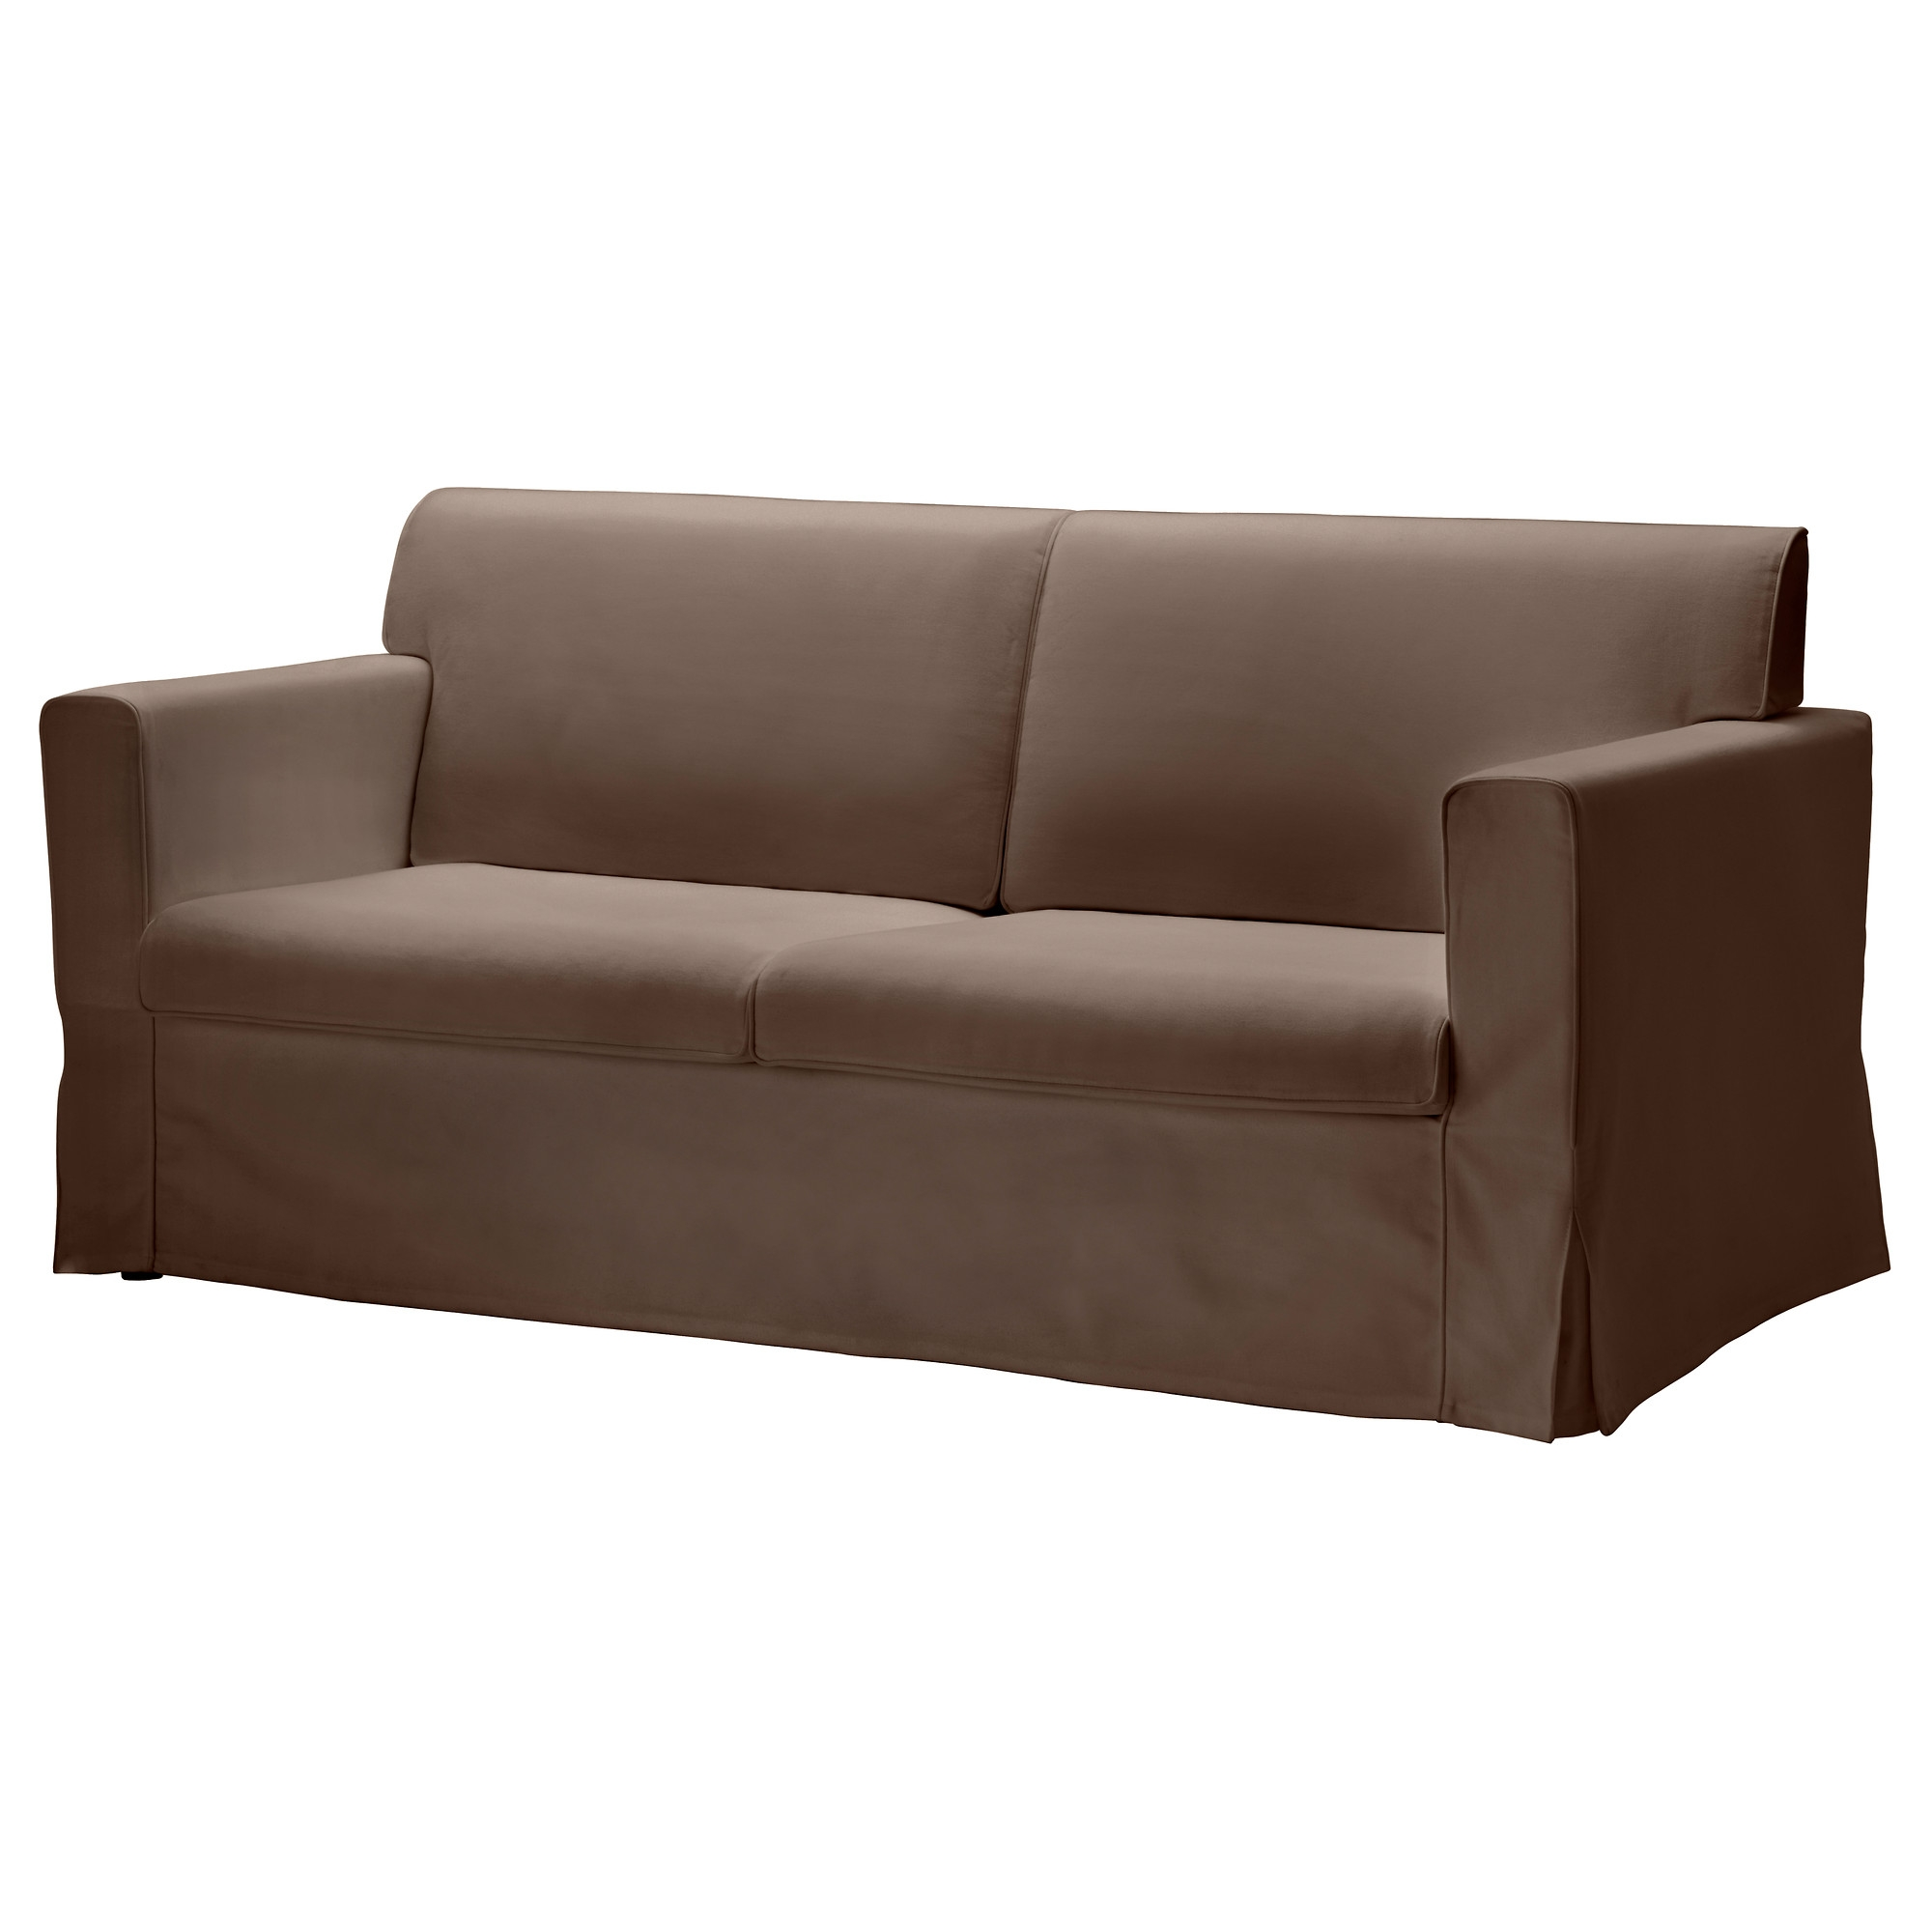 Cool Simple Sofa Good Simple Sofa 13 For Sofas And Couches Ideas Intended For Cool Sofa Ideas (#6 of 12)